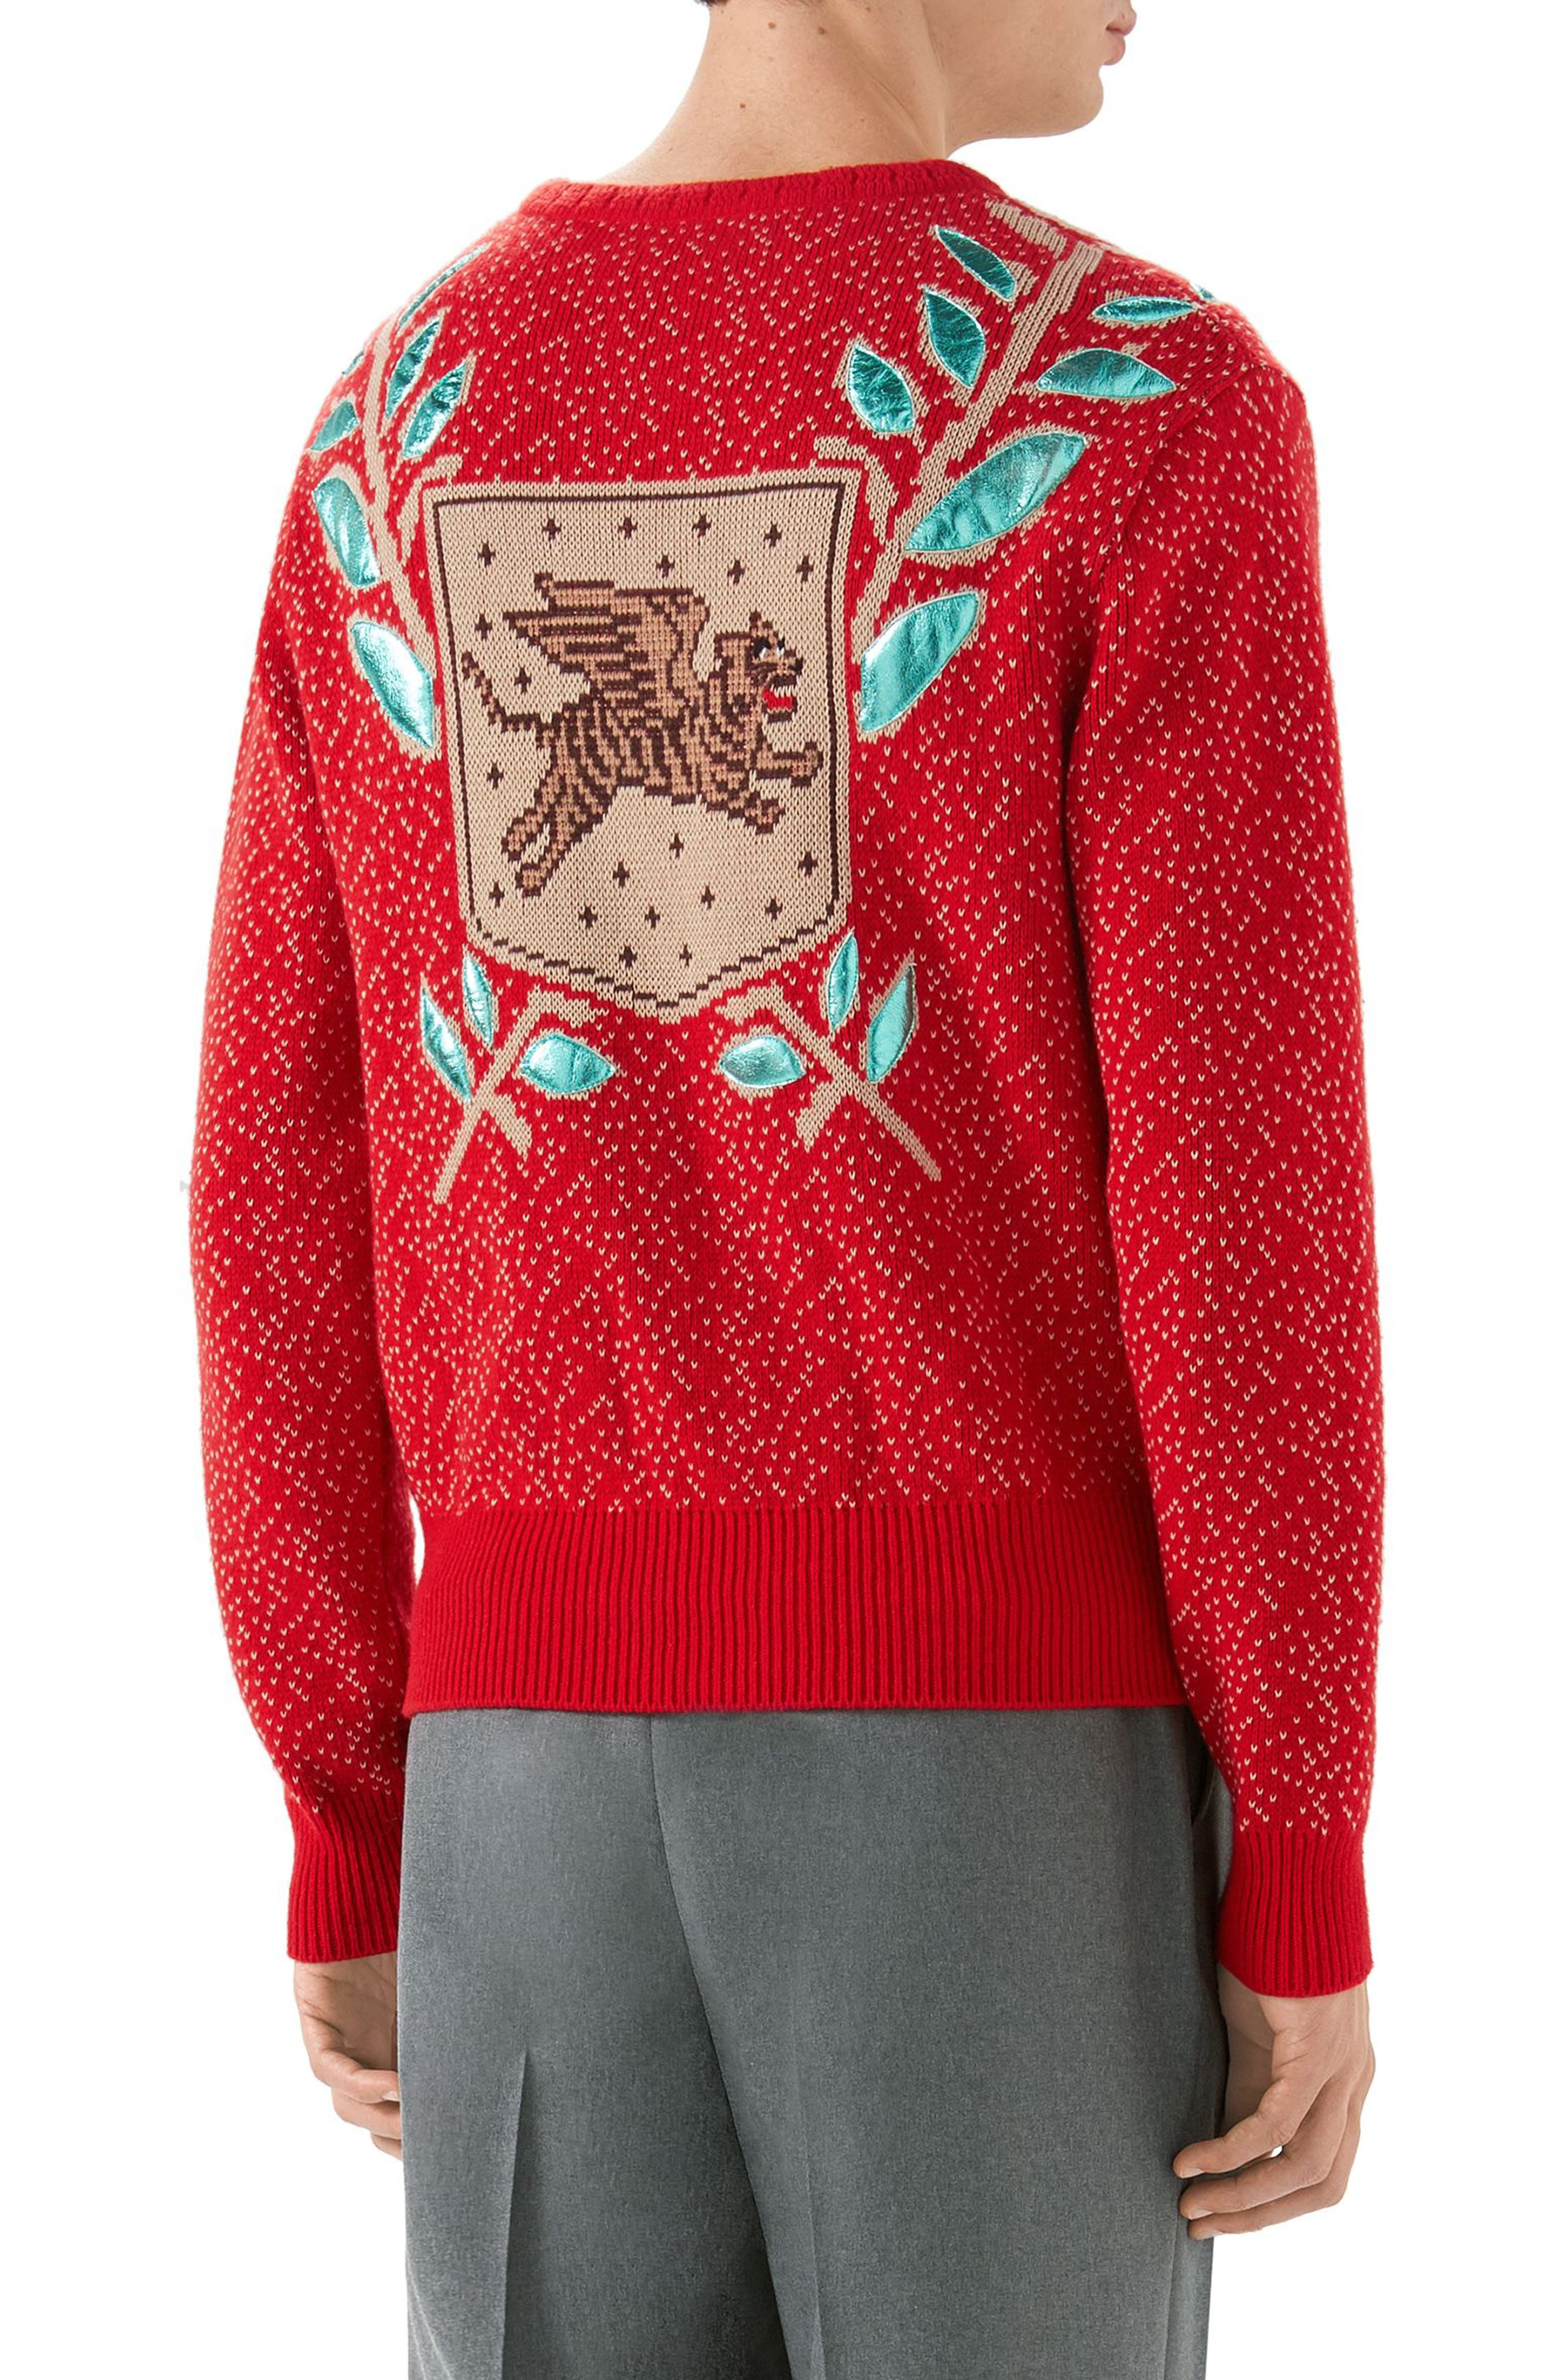 Jacquard Wool Blend Sweater,                             Alternate thumbnail 2, color,                             LIVE RED